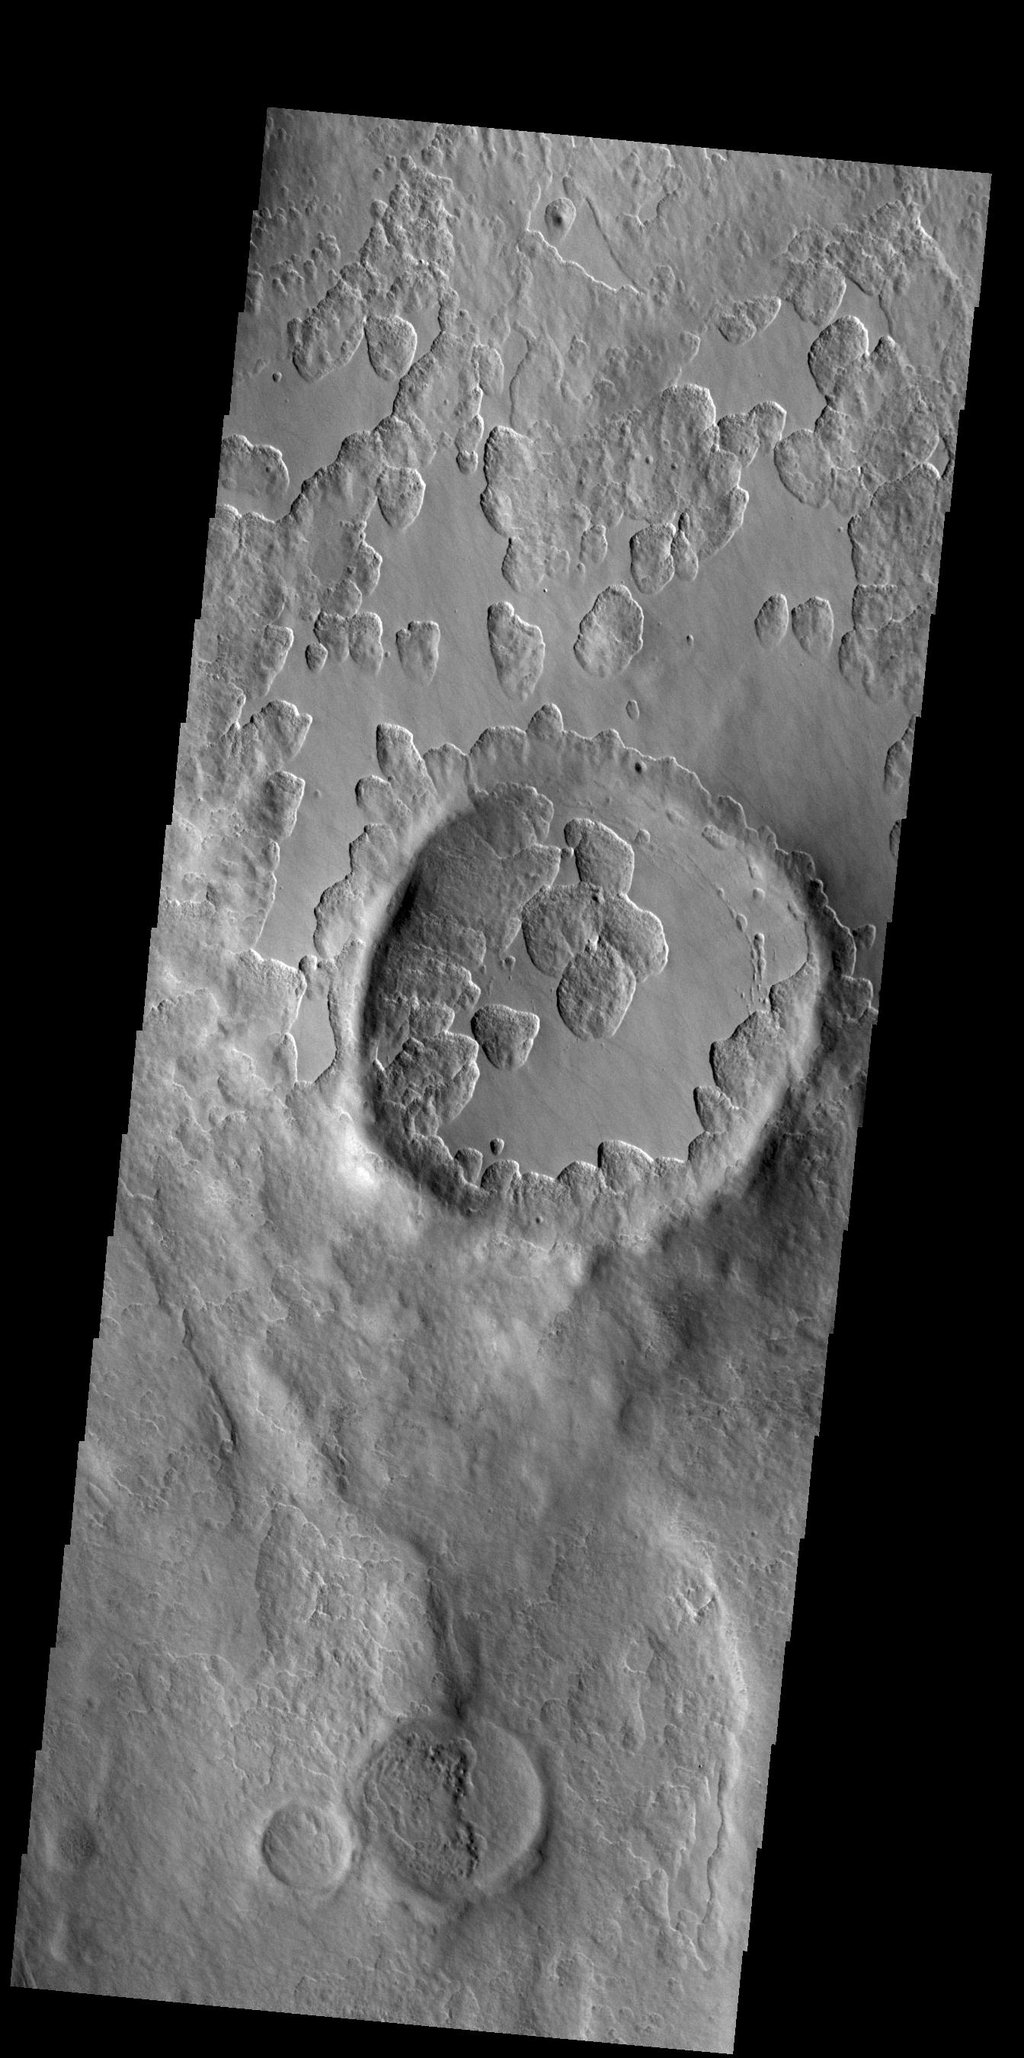 This image from NASA's Mars Odyssey shows an unusual layer of smooth material covers the flanks of the volcano Peneus Patera just south of the Hellas Basin.